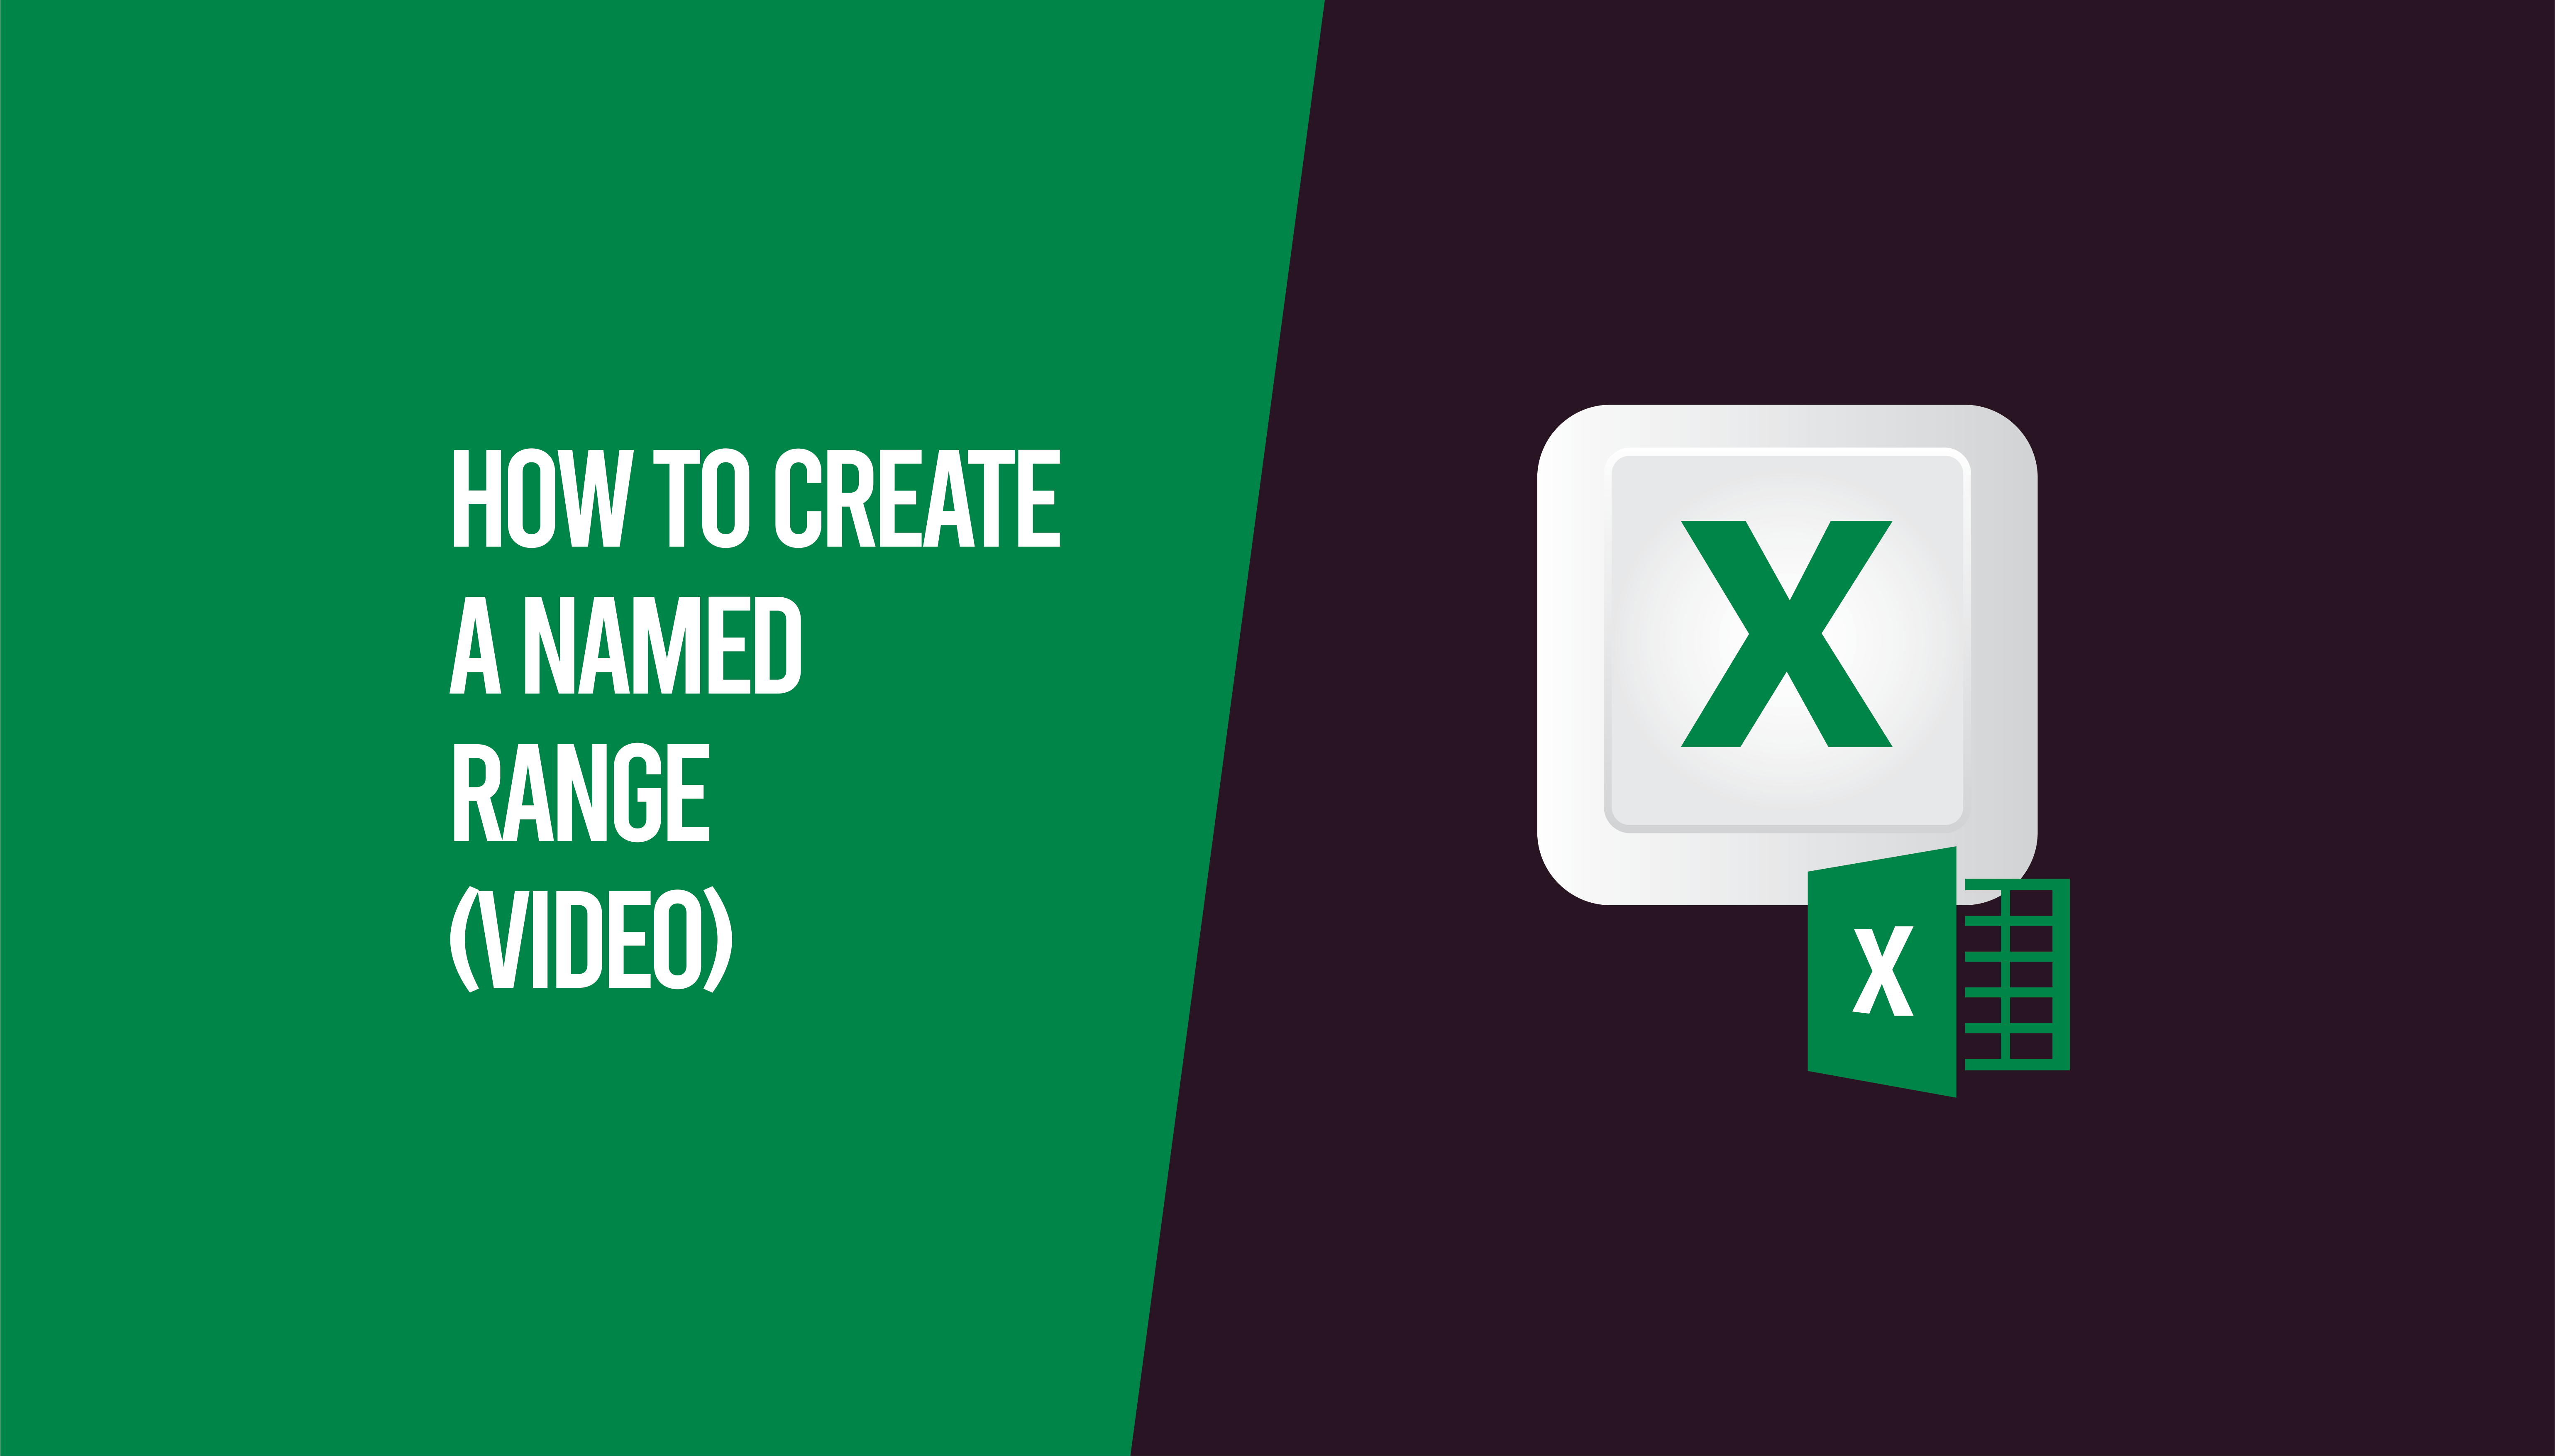 How To Create A Named Range Video